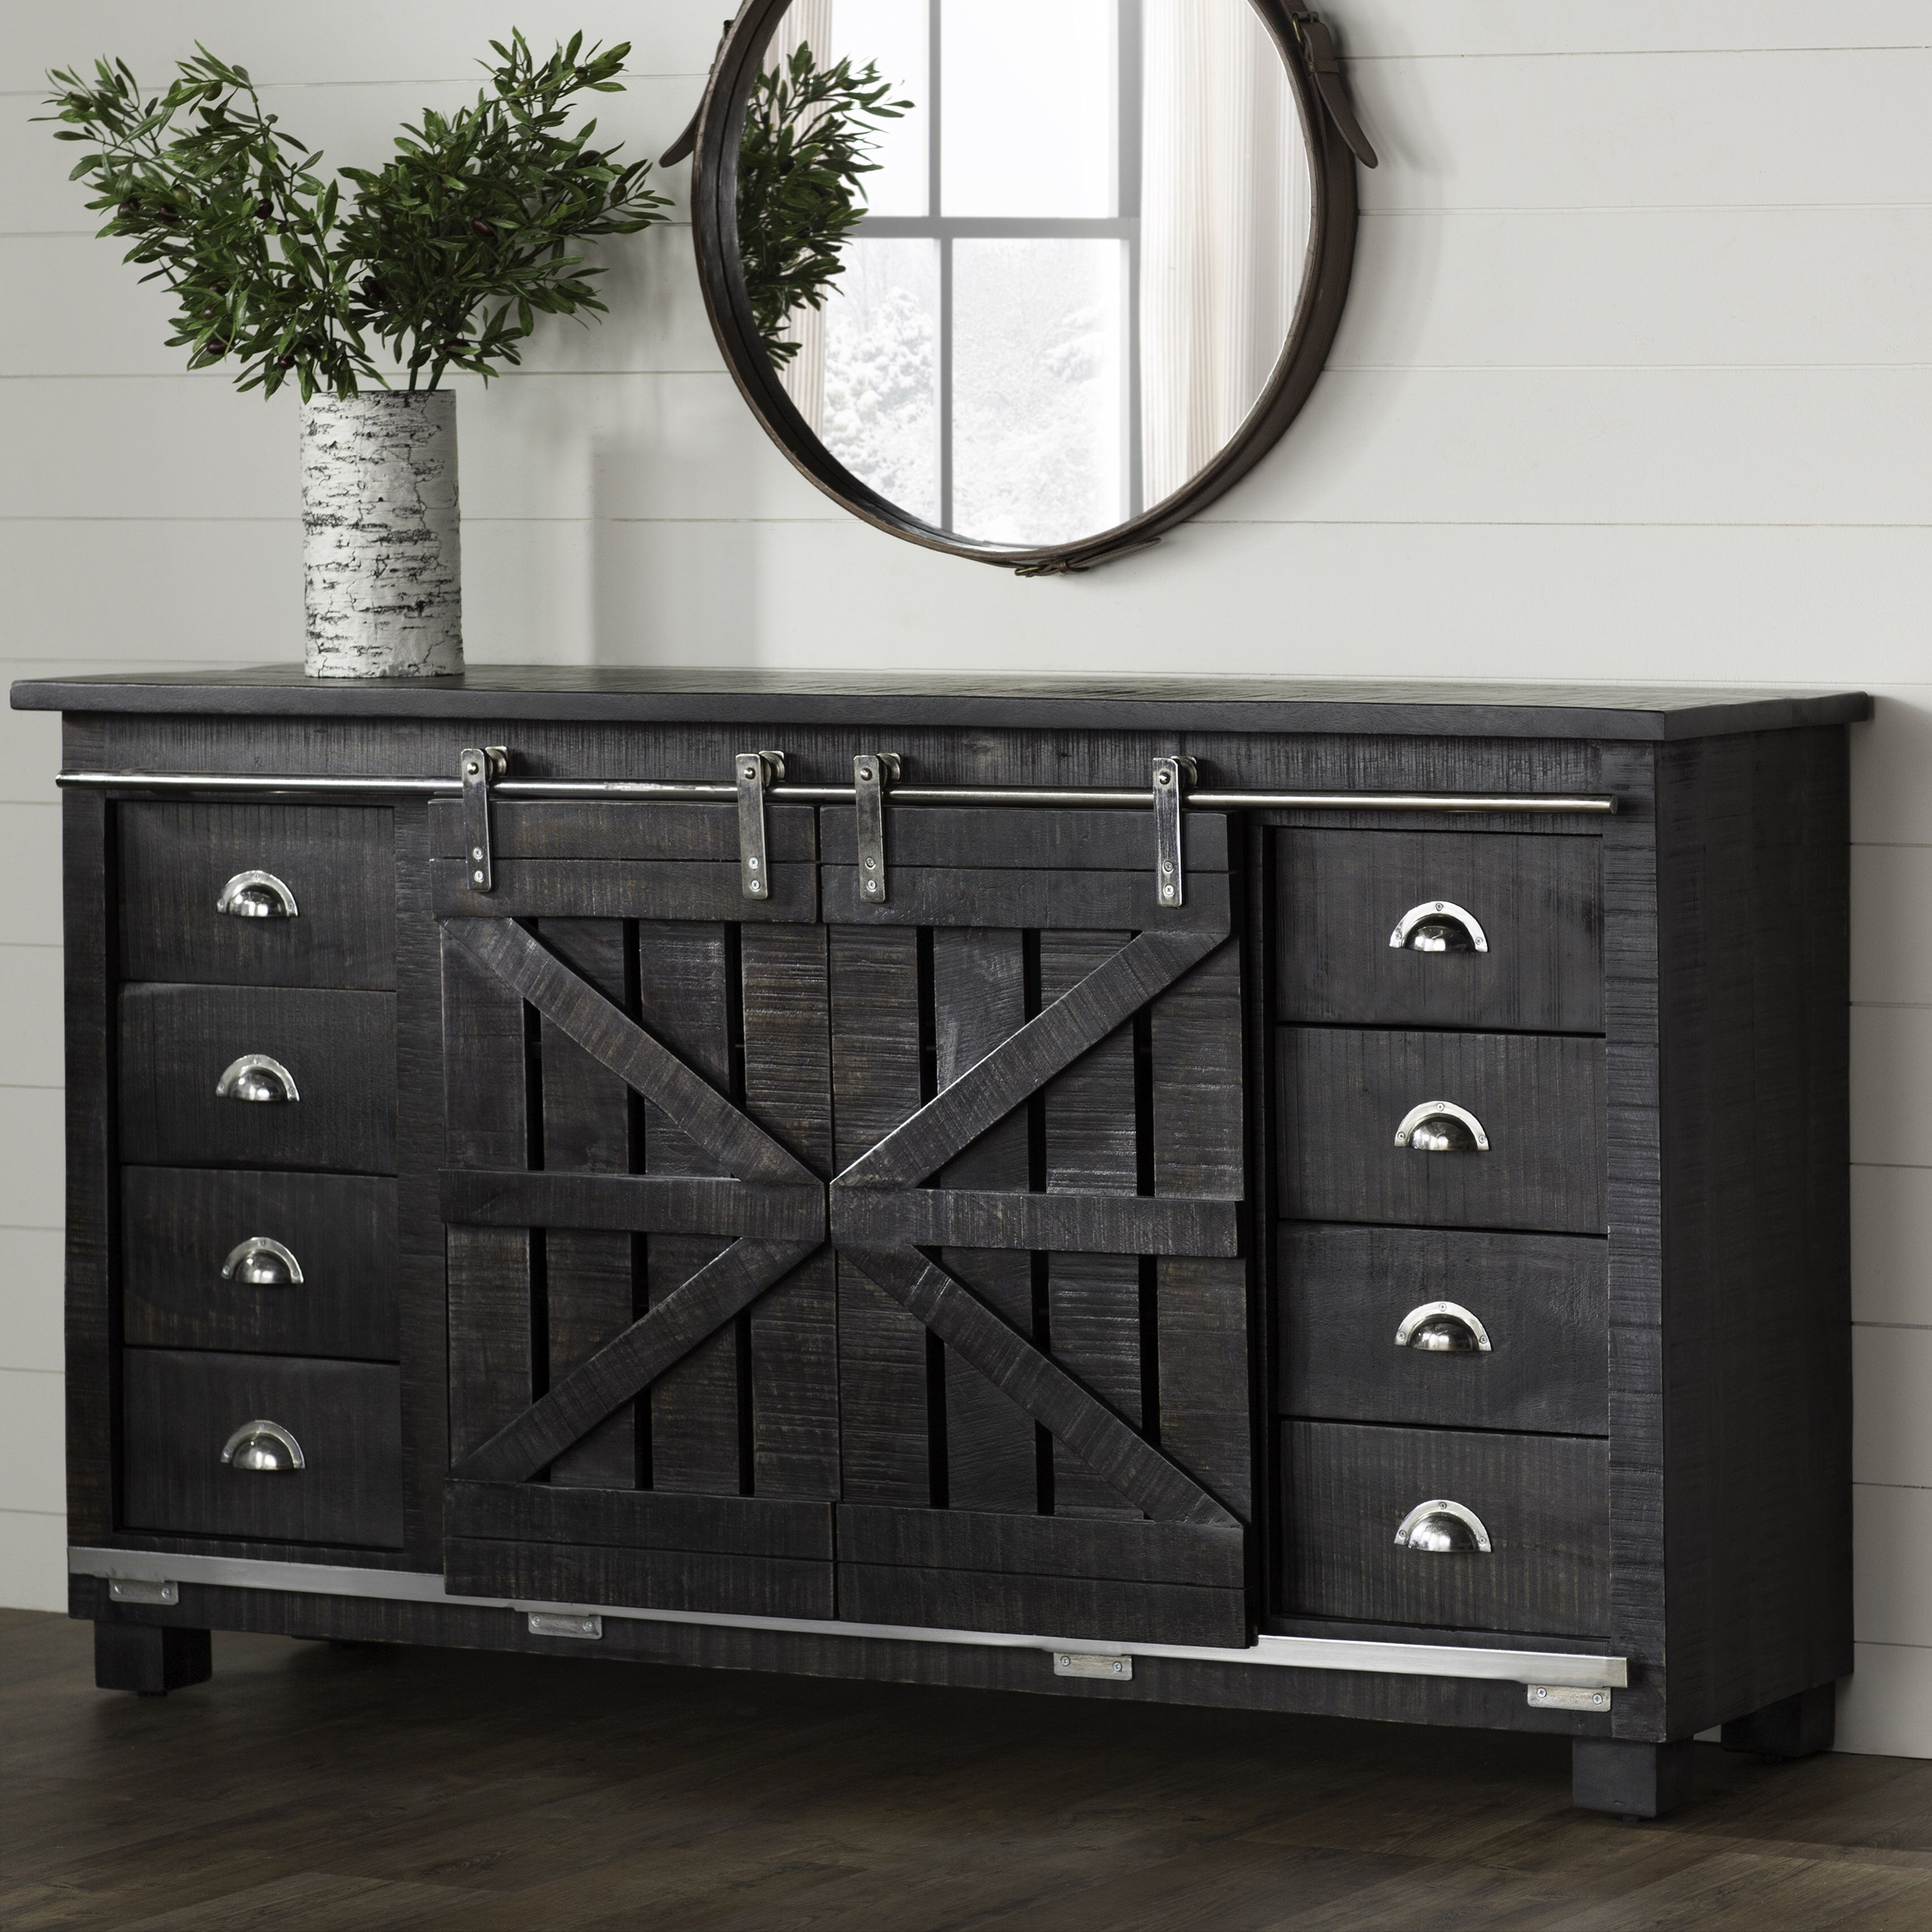 Deana Credenza | Dining Room In 2019 | Shabby Chic Furniture Pertaining To Amityville Sideboards (Image 21 of 30)